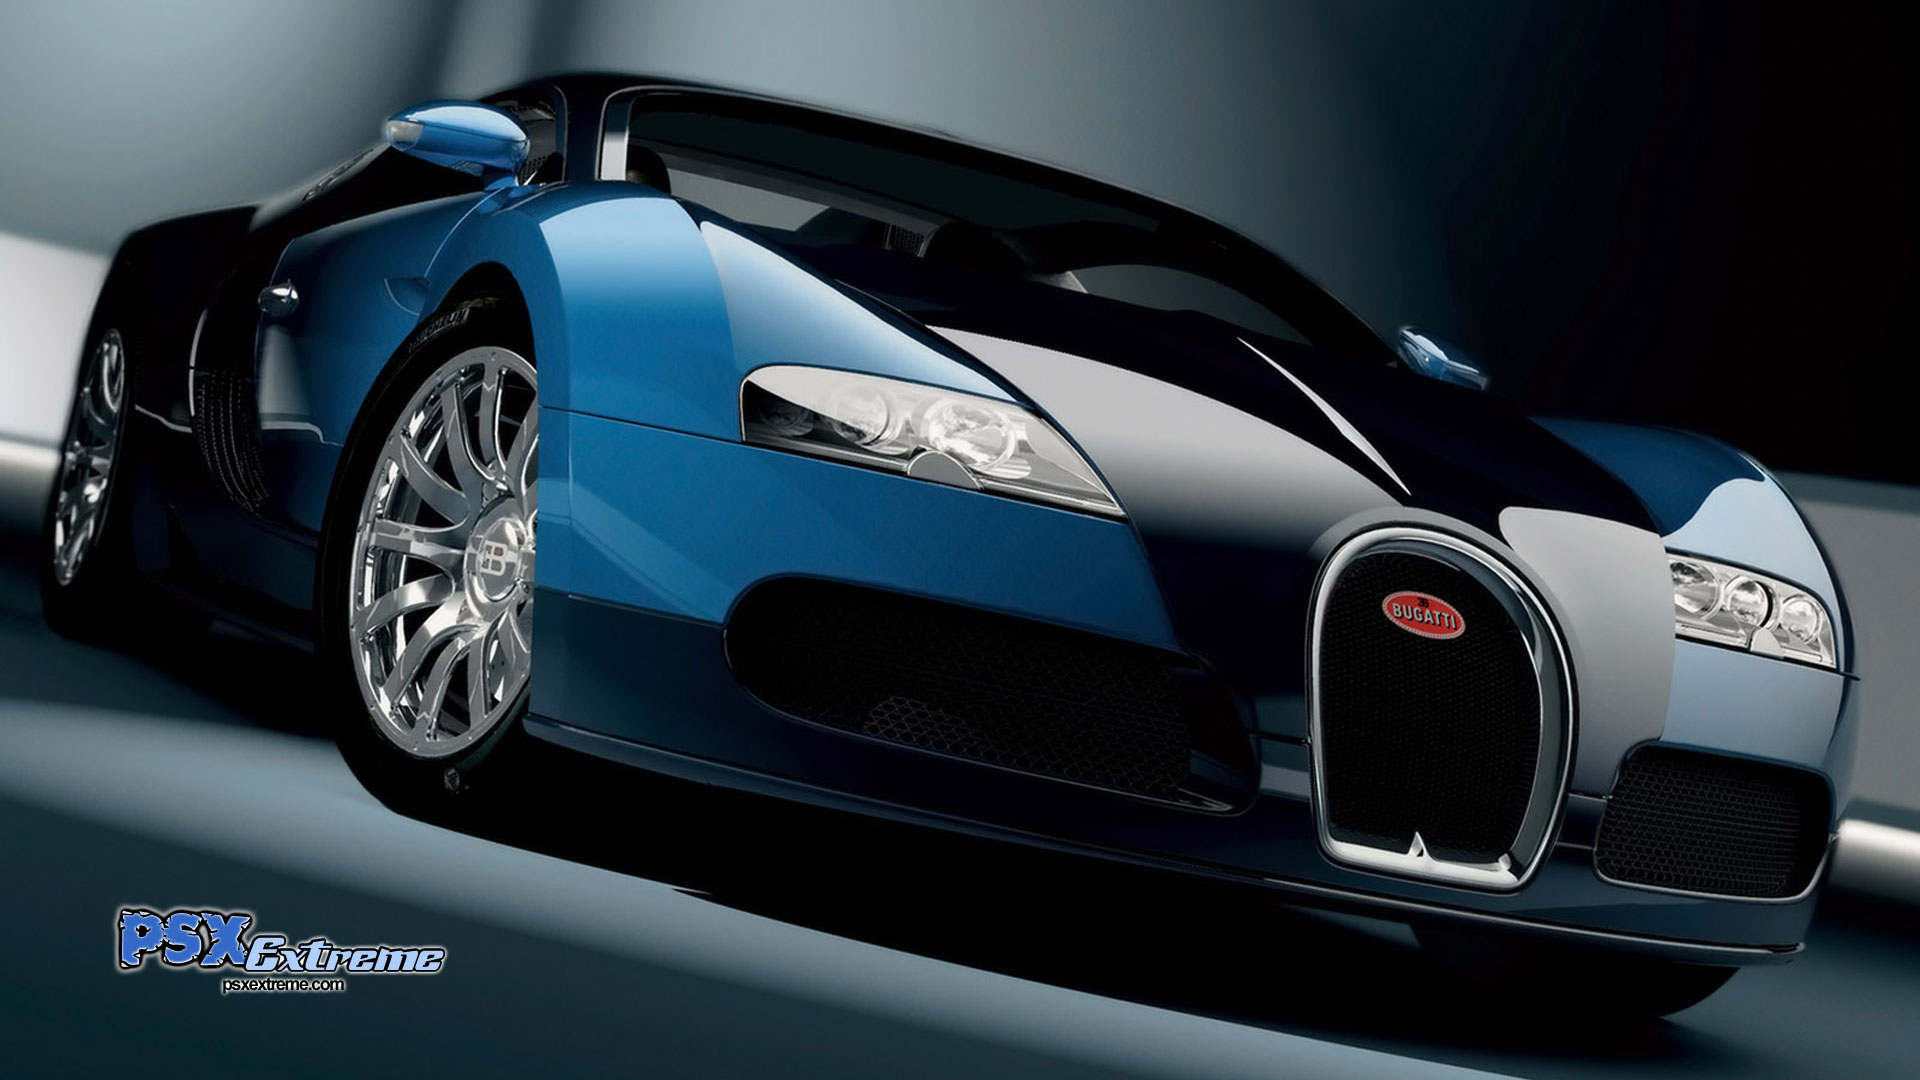 wallpapers veyron ps3 bugatti background computer 1920x1080 1920x1080